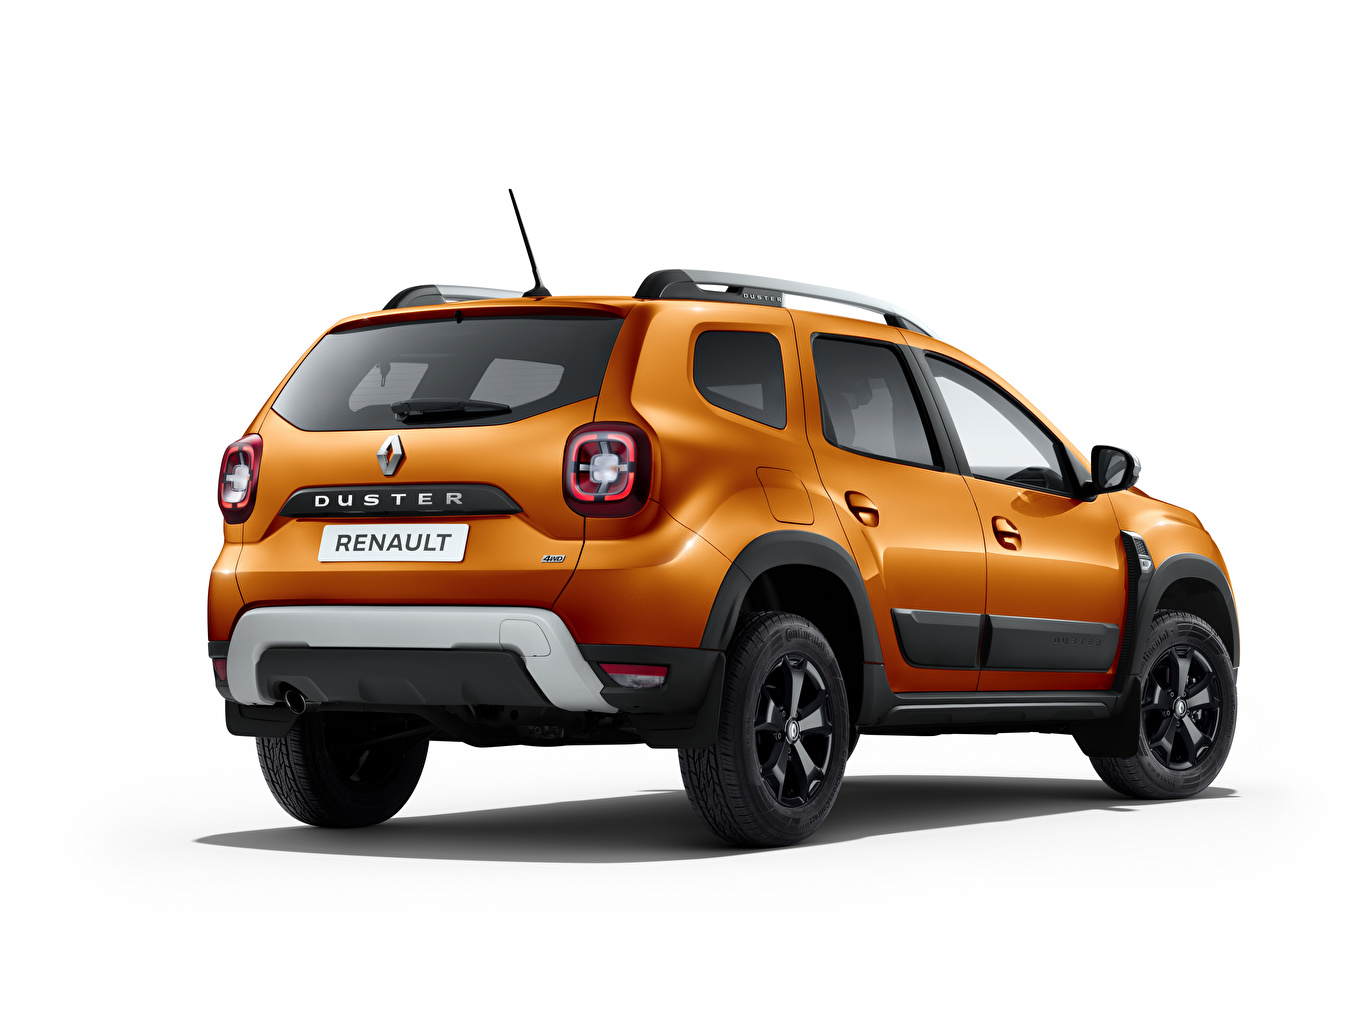 Pictures Renault Duster, CIS-spec, 2021 Orange auto Metallic White background Cars automobile